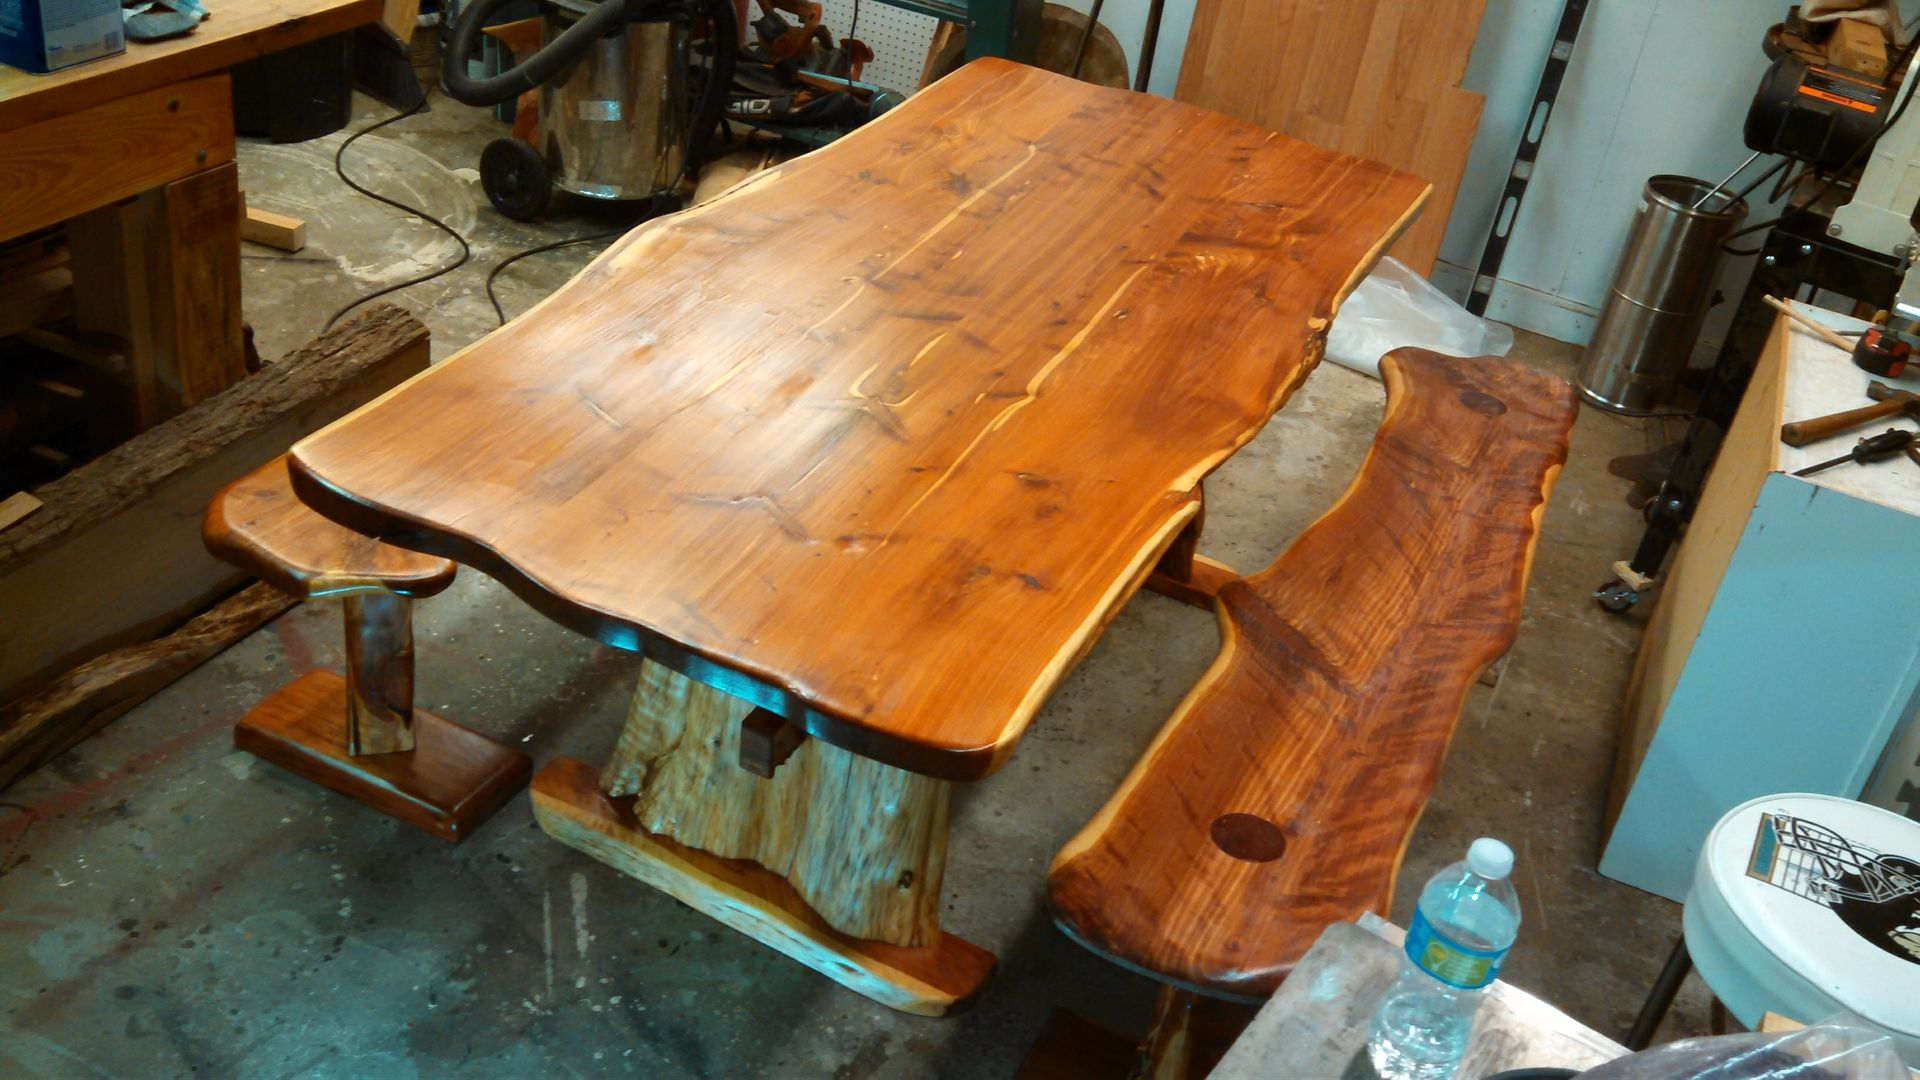 Benches Dining Table: Hand Made Live Edge Cedar Dining Table And Benches By